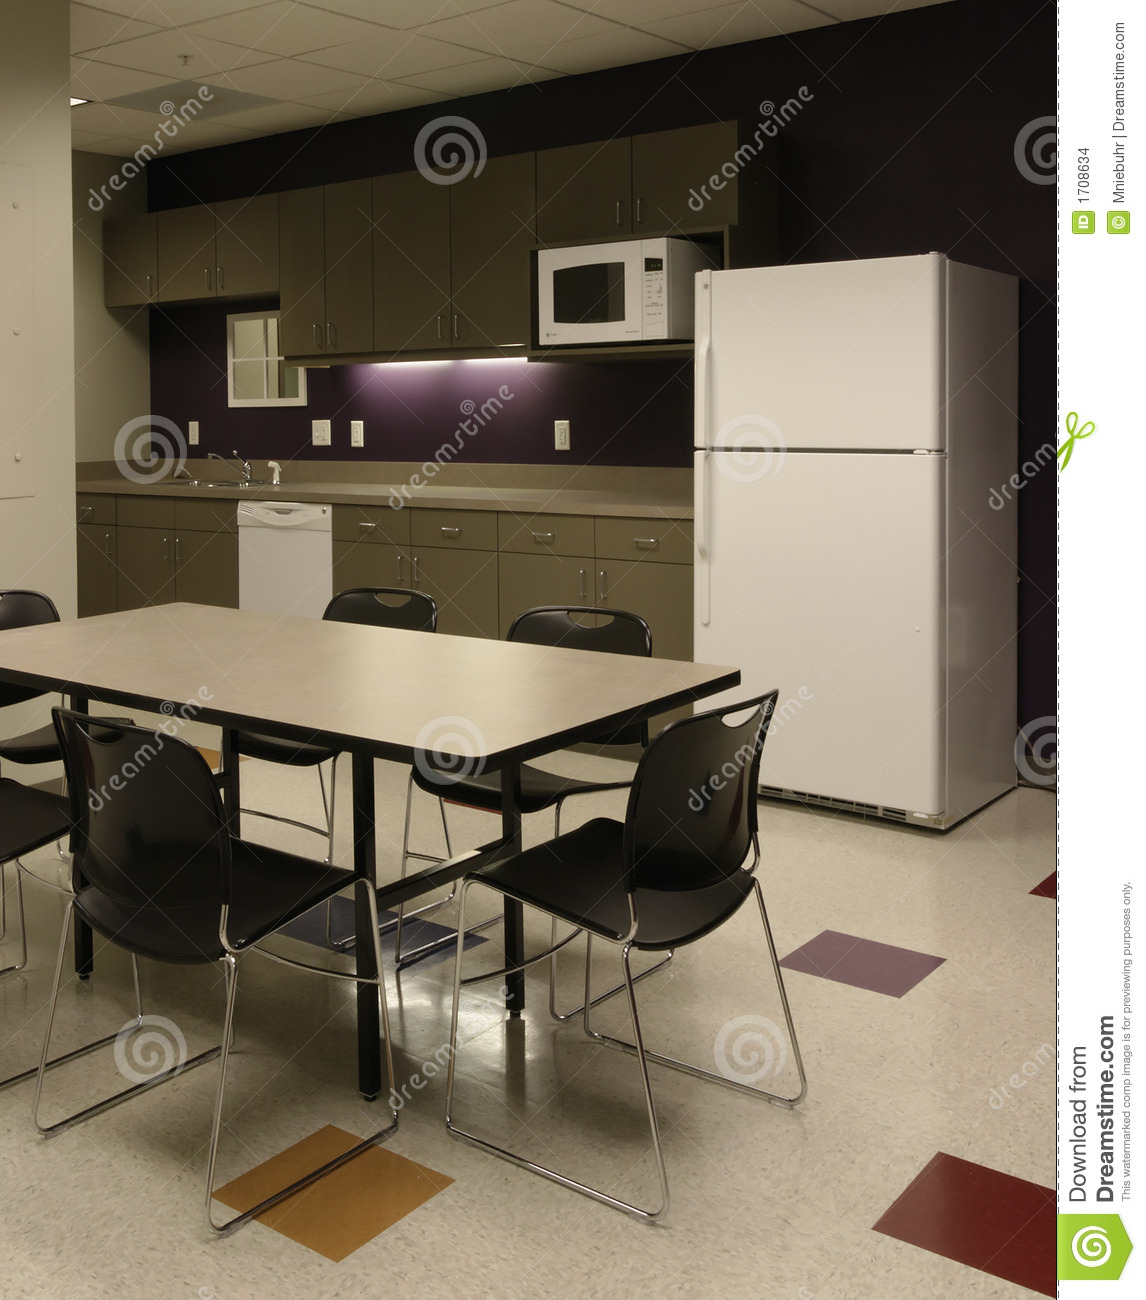 Office Break Room Cafe Employee Kitchen Space Stock Photo Image Of Fridge Carpet 1708634